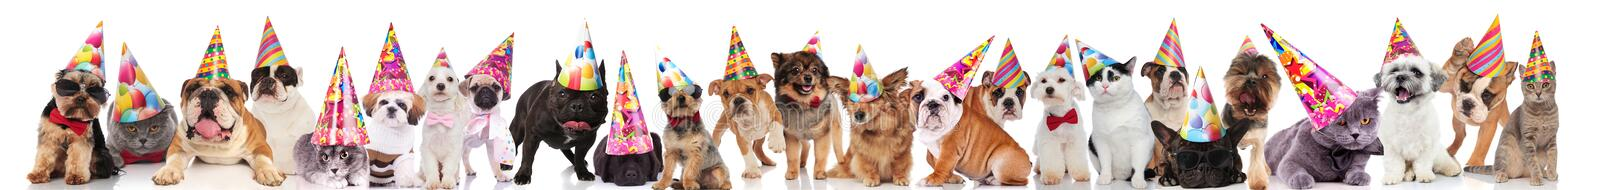 Large group of cute cats and dogs wearing colorful caps. Large group of cute cats and dogs wearing colorful birthday caps while standing, sitting and lying on stock photo